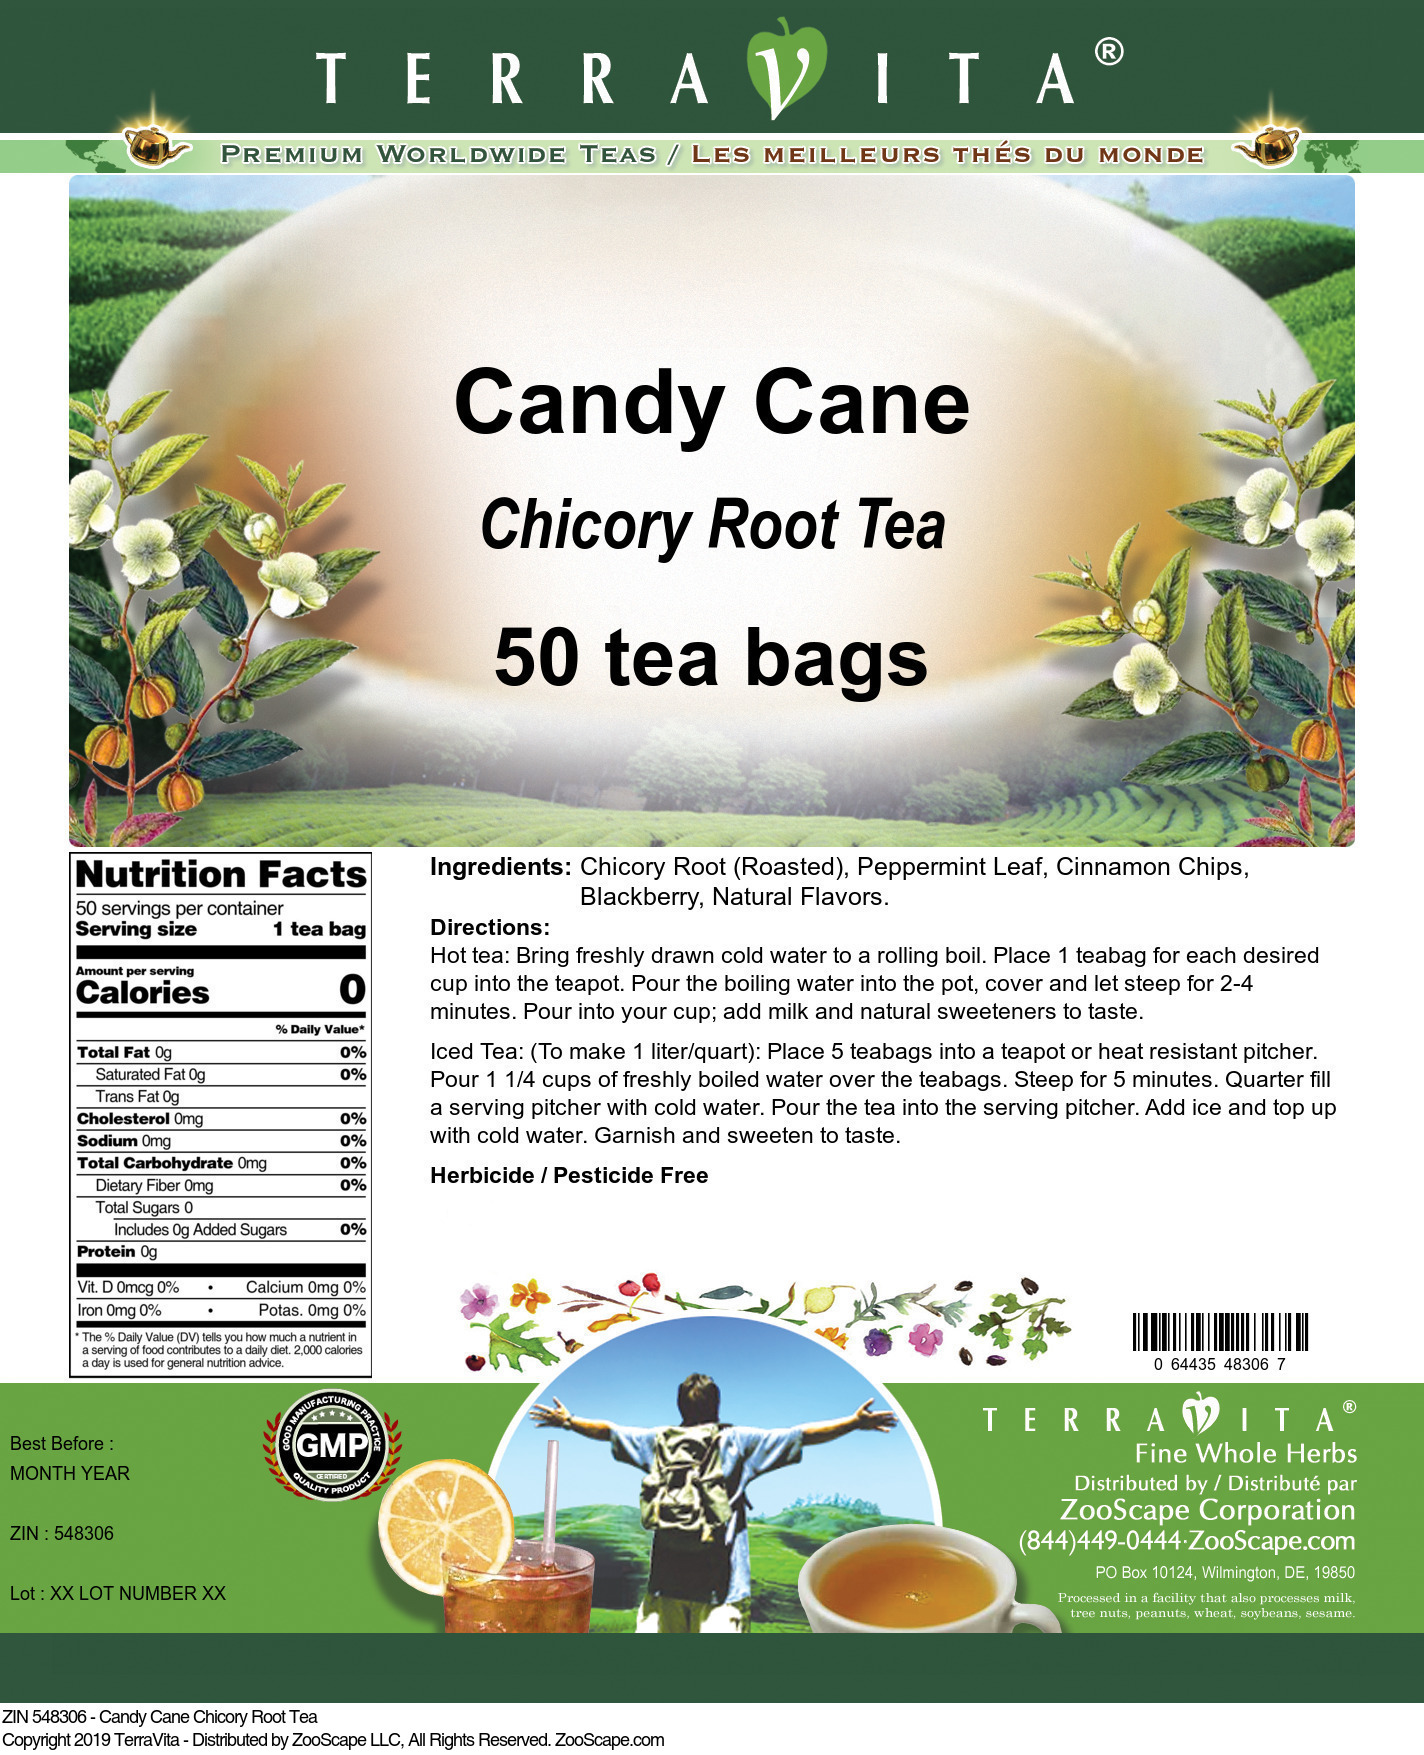 Candy Cane Chicory Root Tea